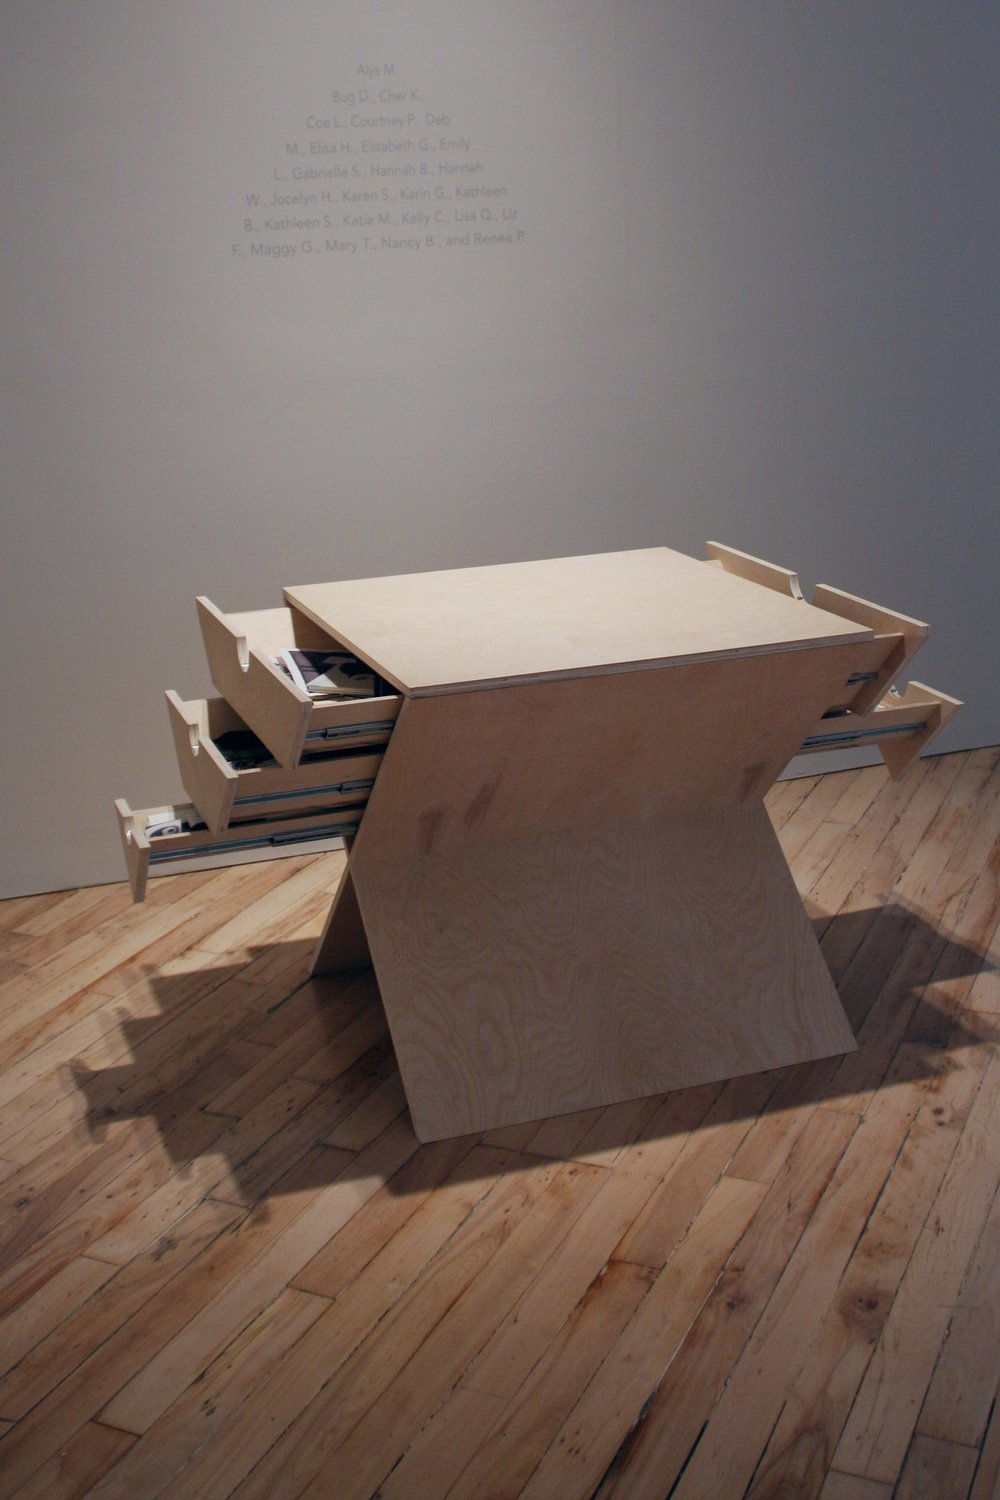 OBJECTS OF COMFORT   2013. Custom-designed table with drawers and participant objects representing Maslow's Hierarchy of Need.